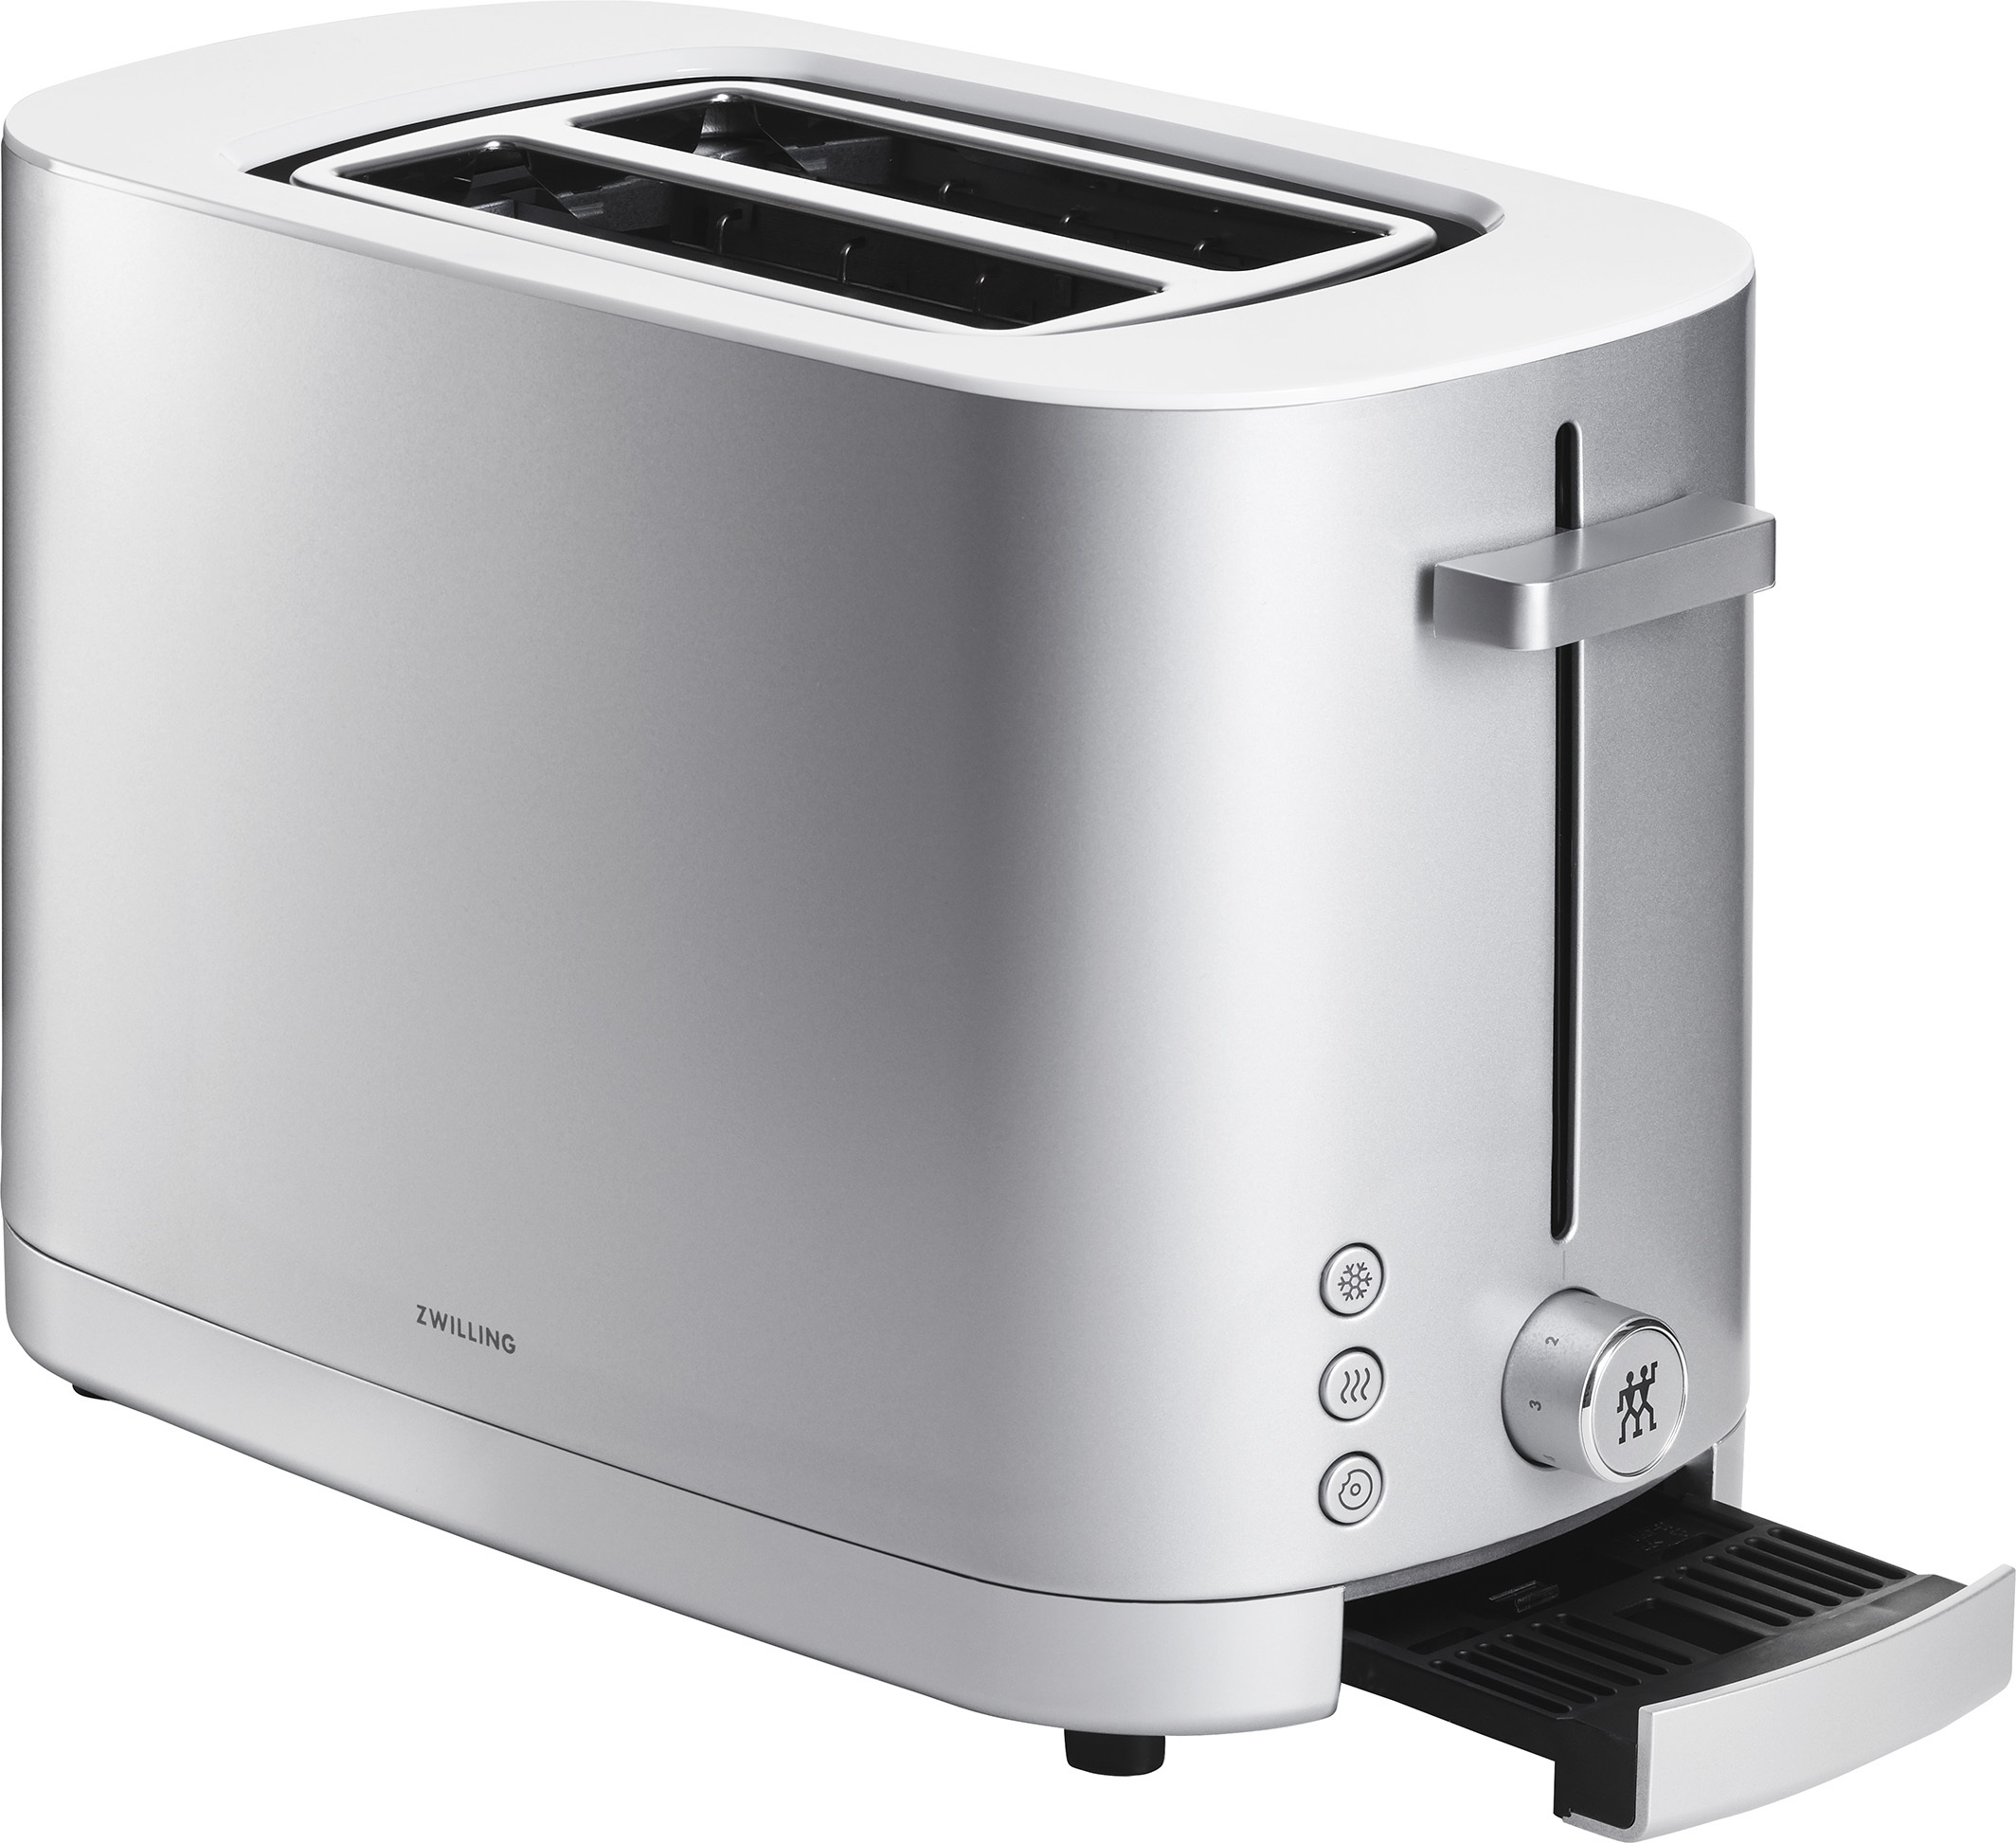 Zwilling Toaster 2 Slots Silver